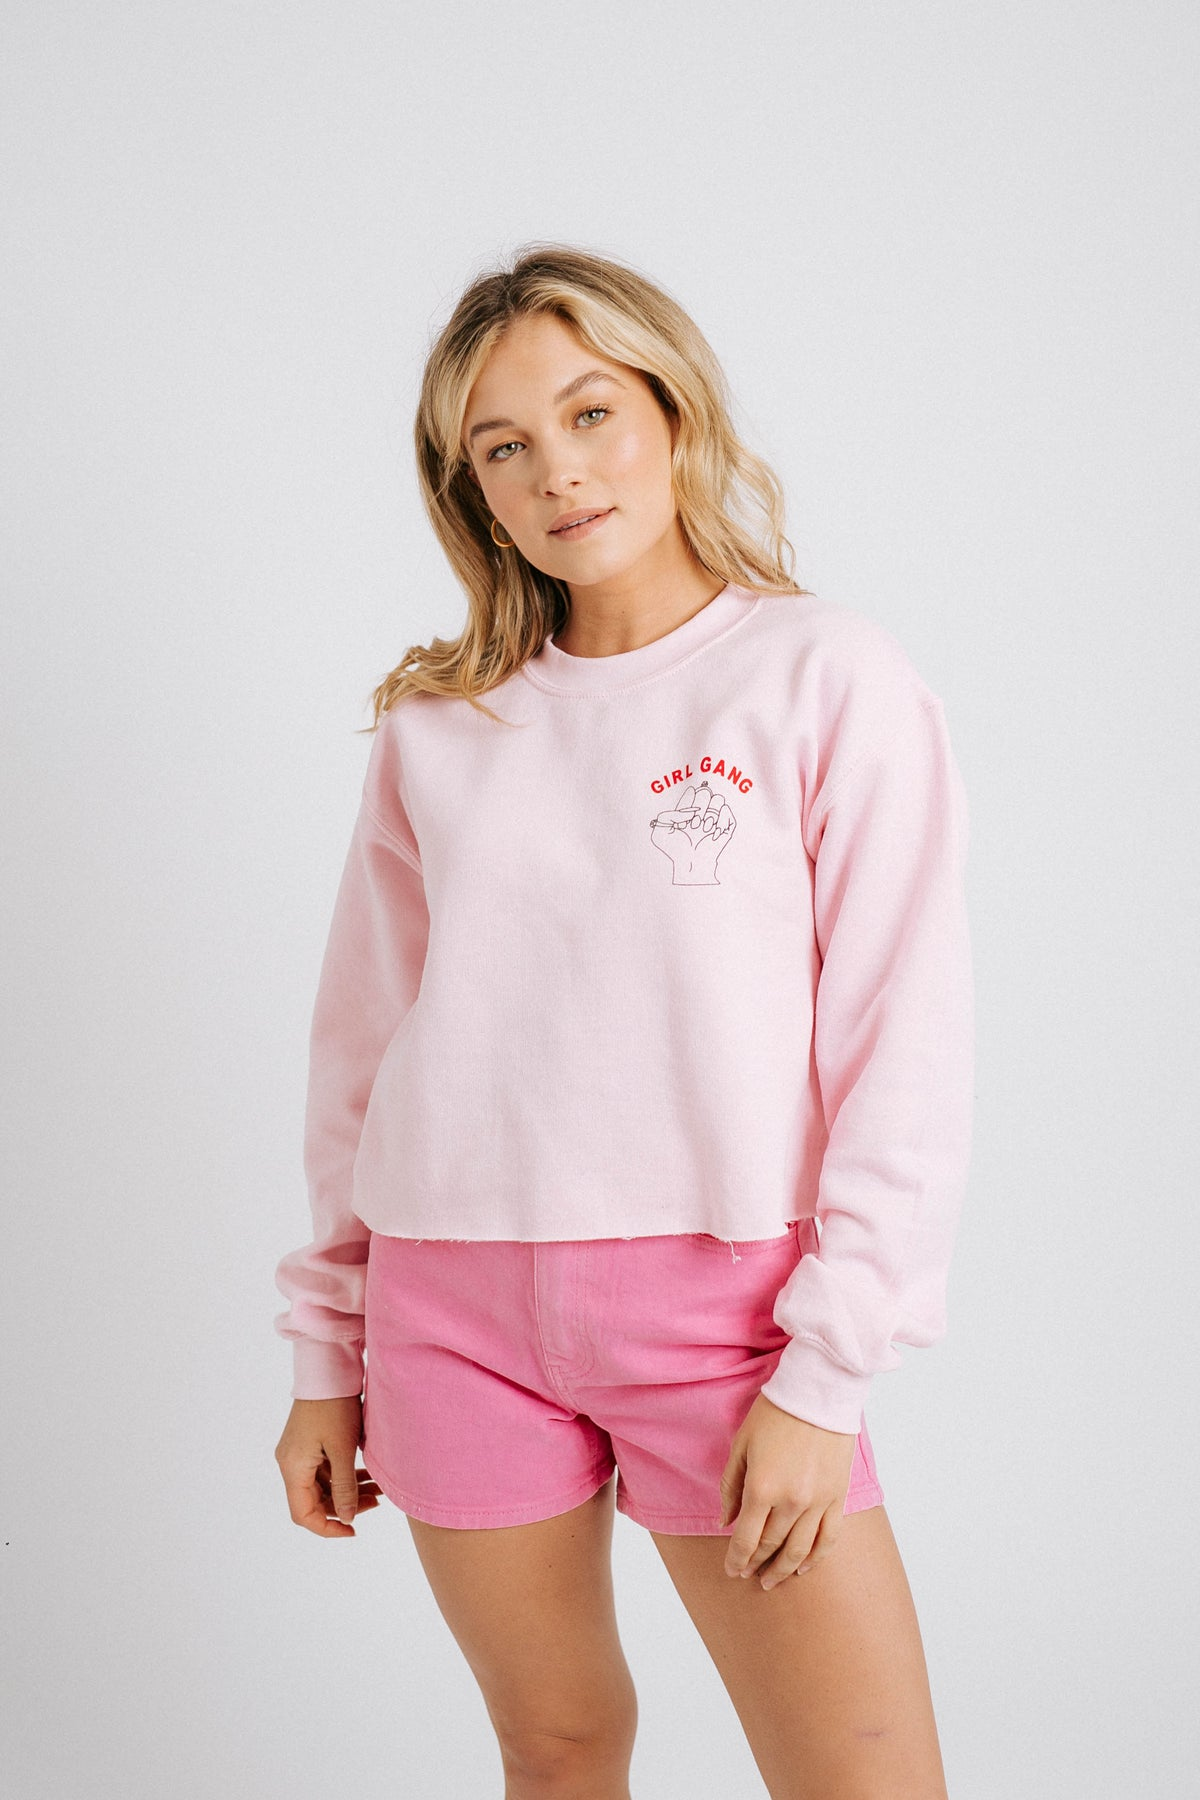 Girls Rule Boys Drool Crop// Baby Pink